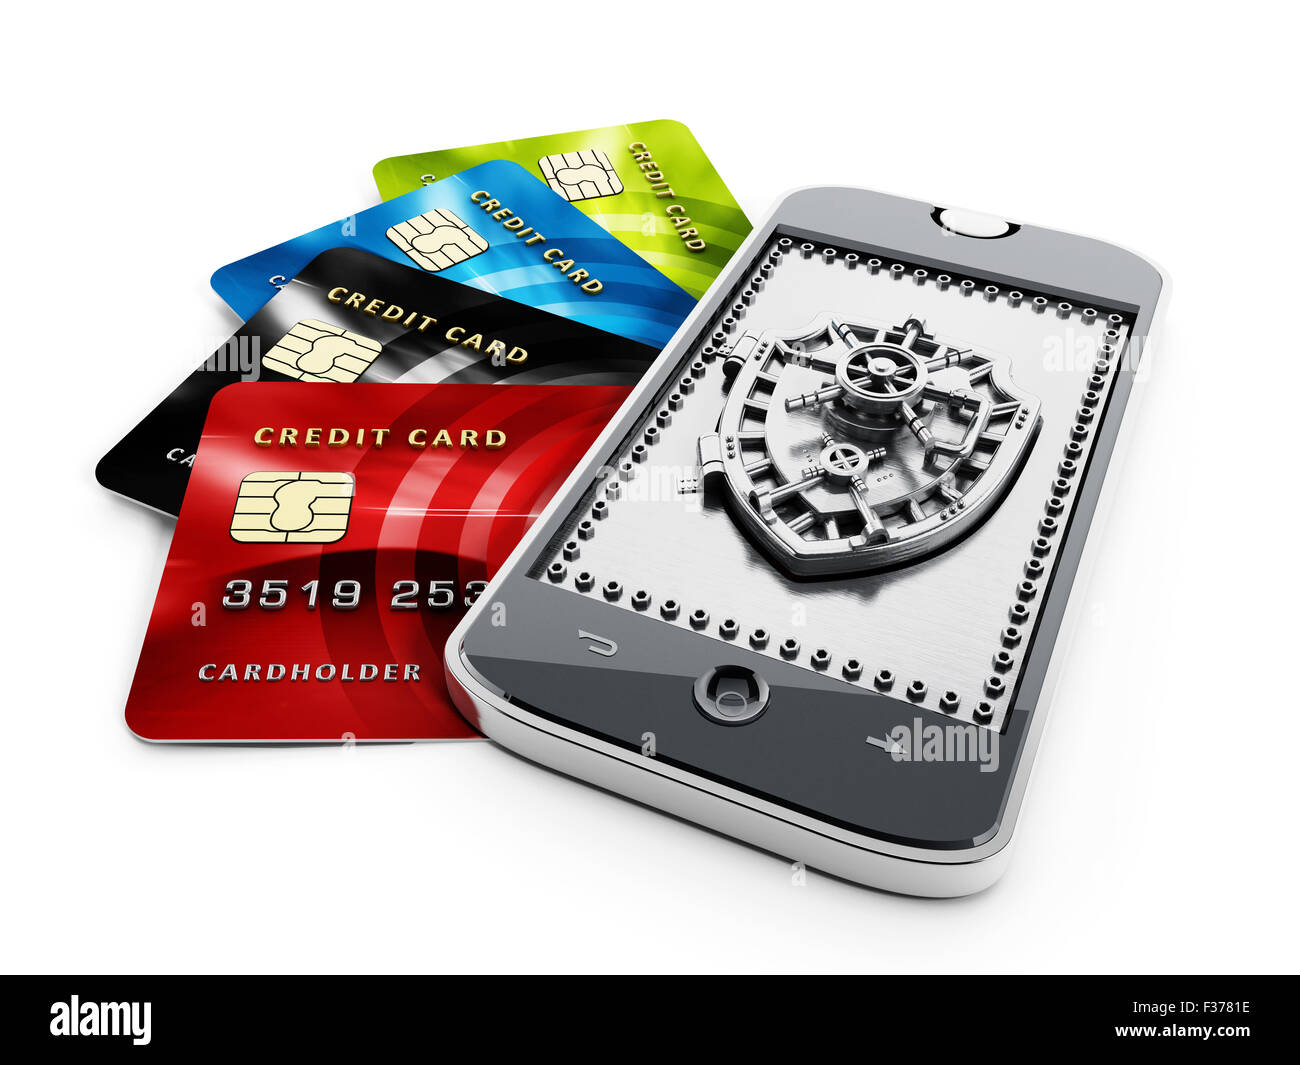 Credit cards and shield shaped vaulted door on smartphone  sc 1 st  Alamy & Credit cards and shield shaped vaulted door on smartphone Stock ...